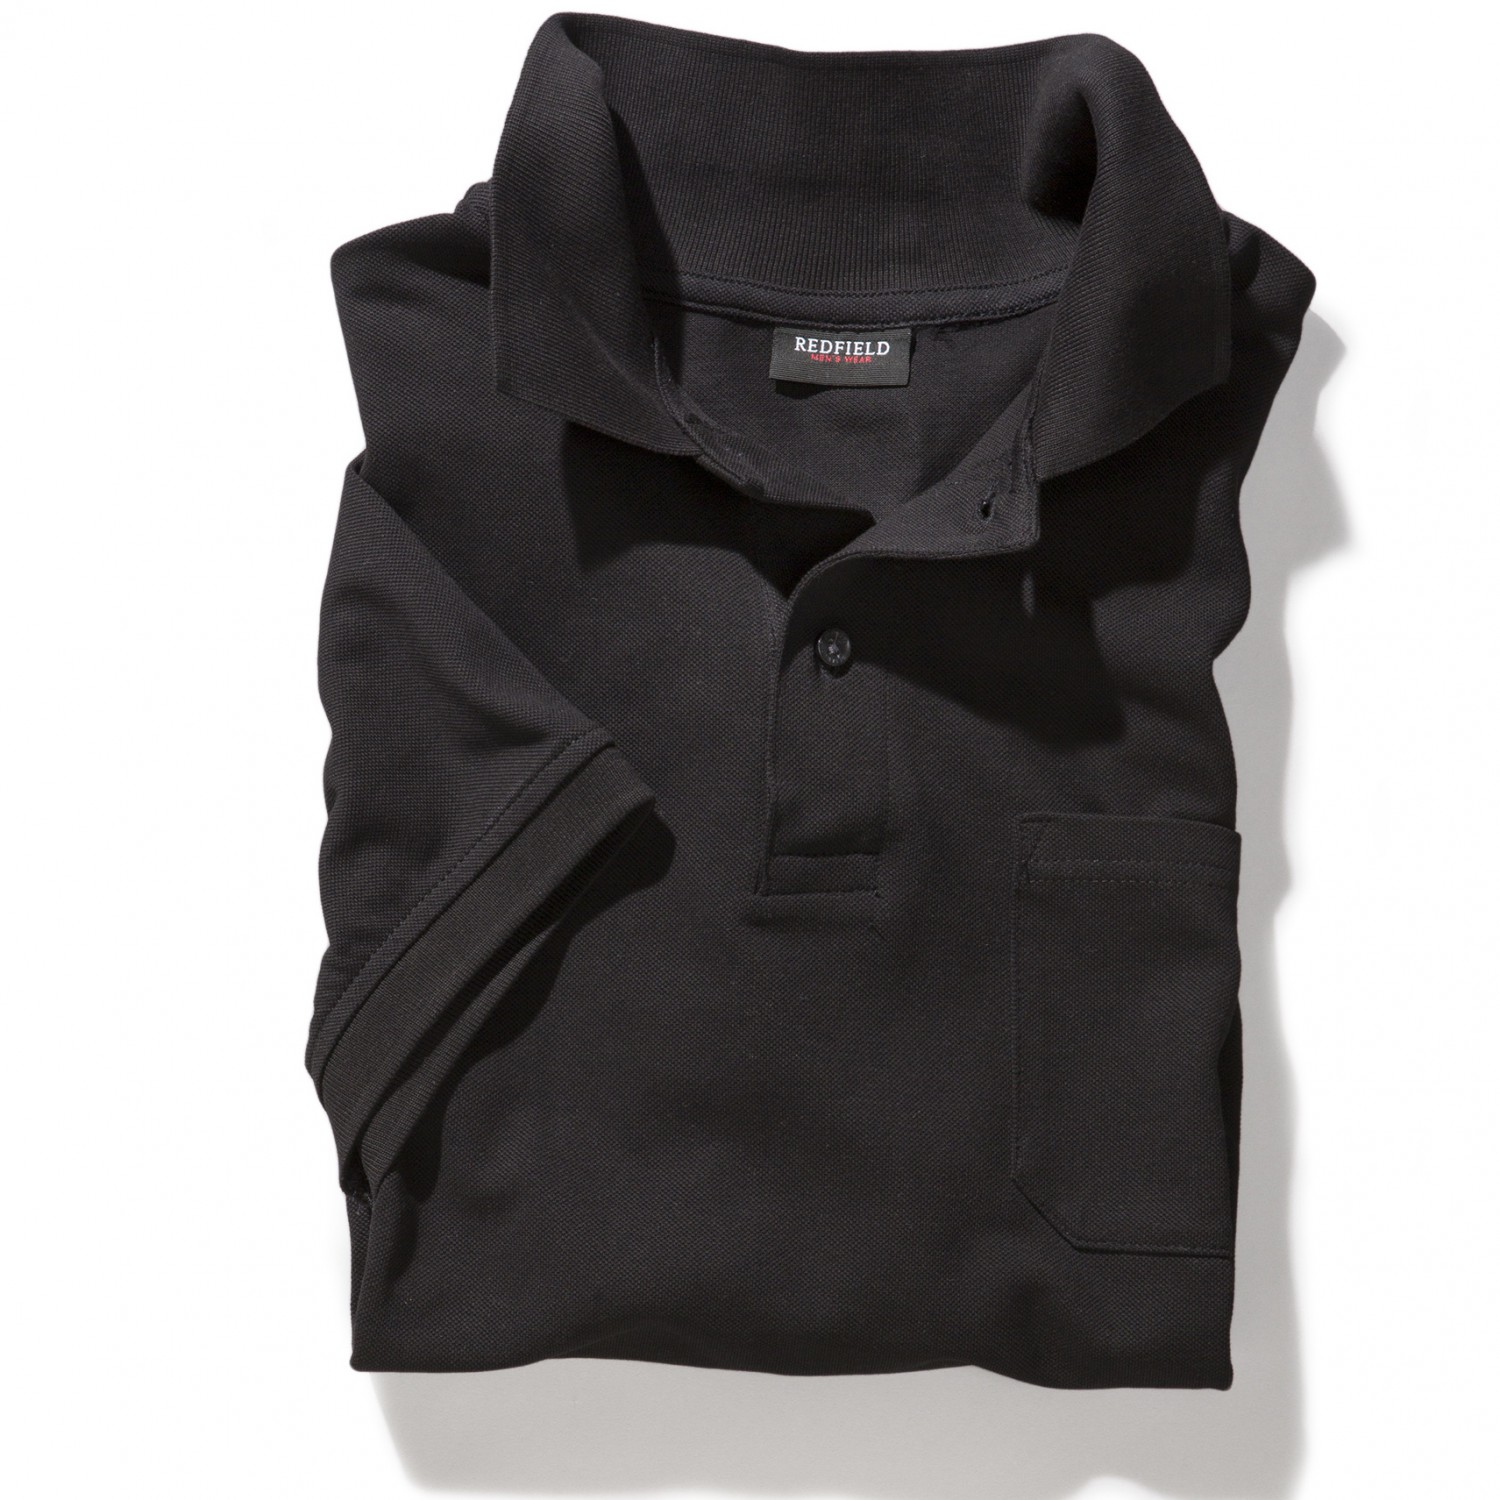 Detail Image to Black polo shirt by Redfield in oversizes up to 8XL